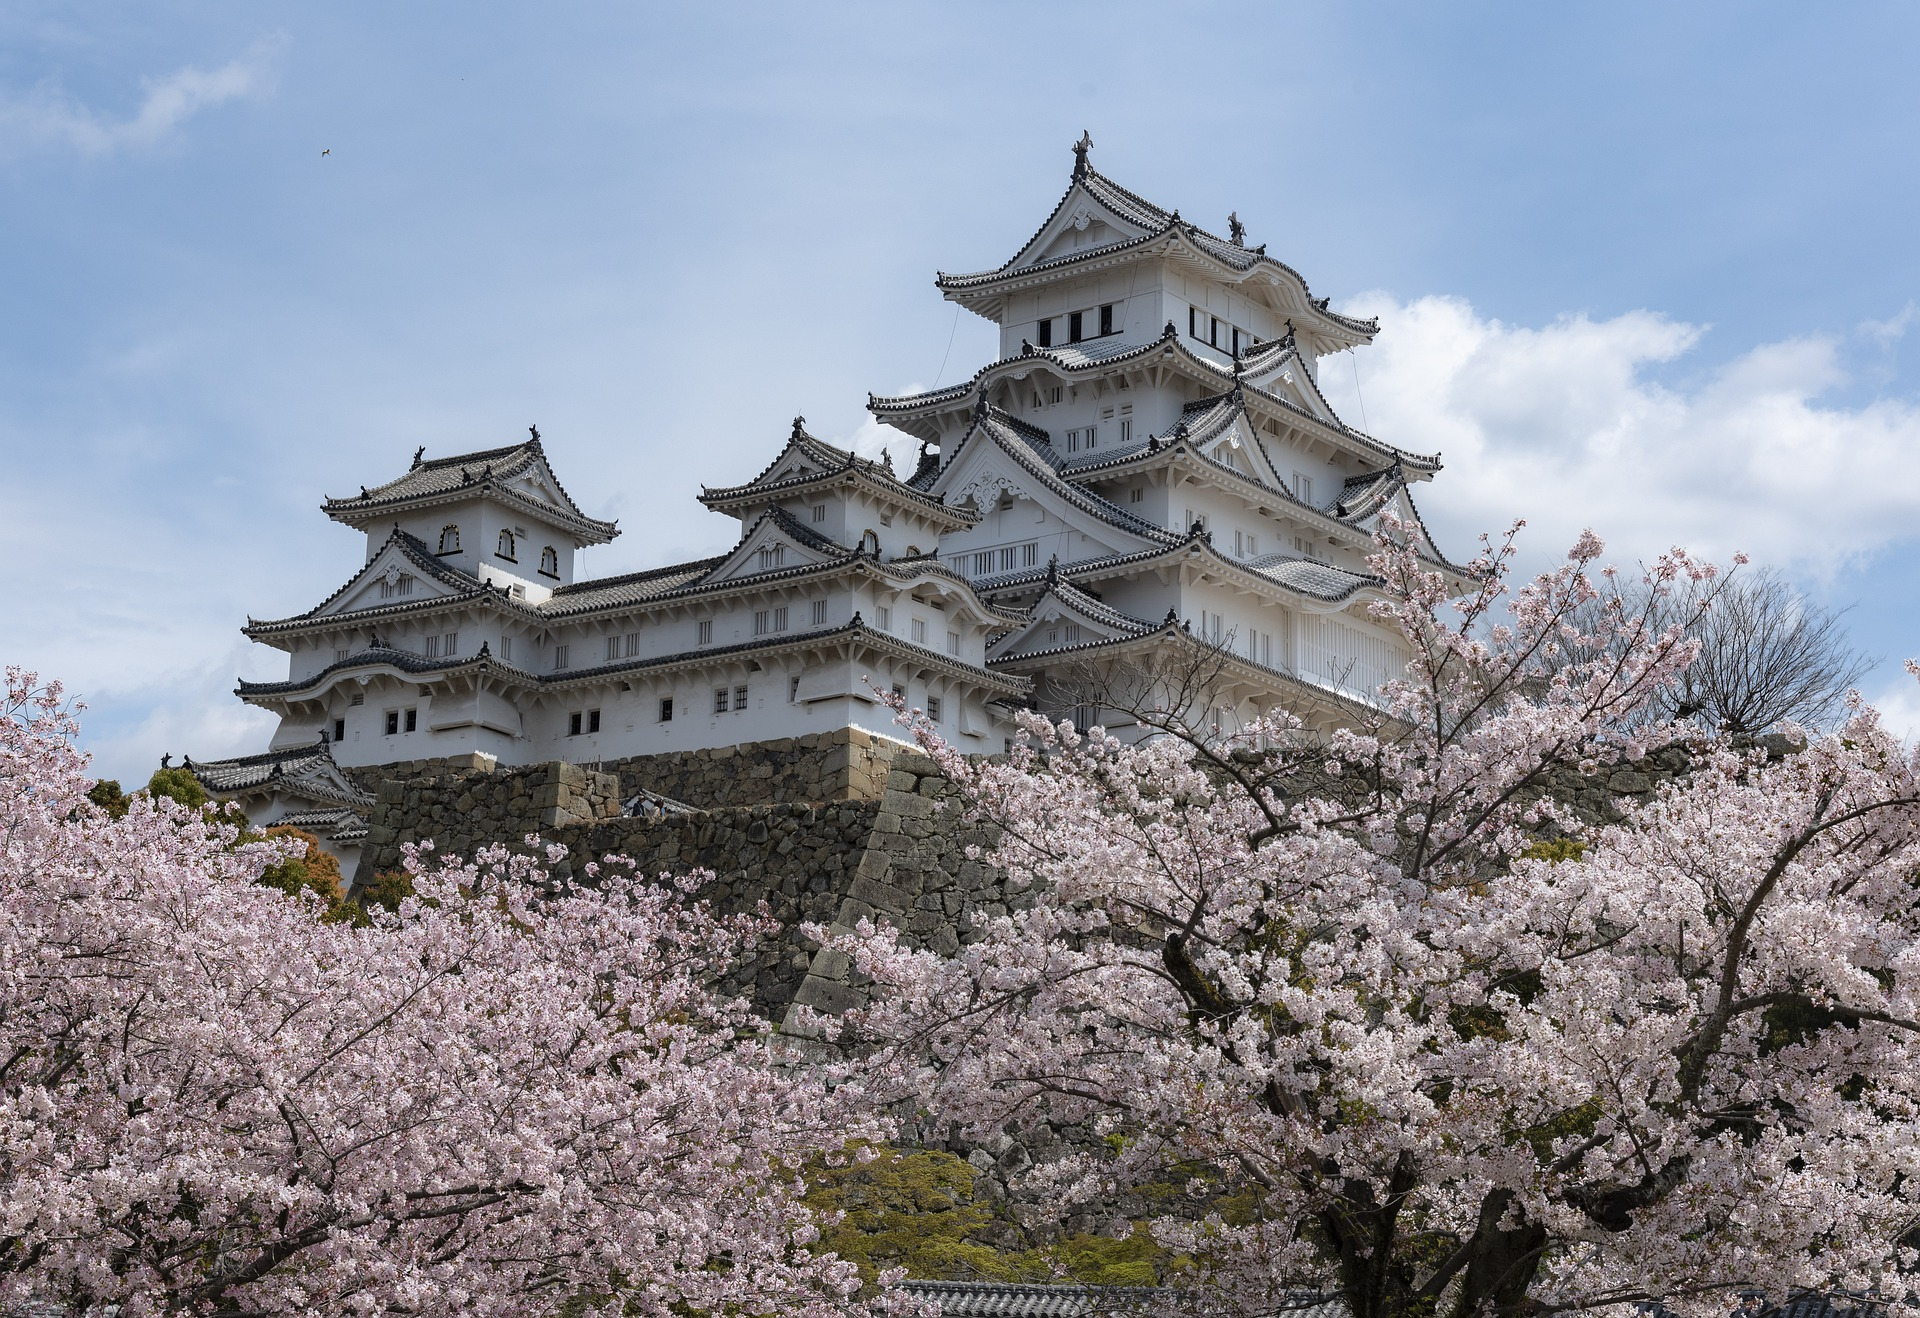 Japanese style castle with cherry blossoms in front